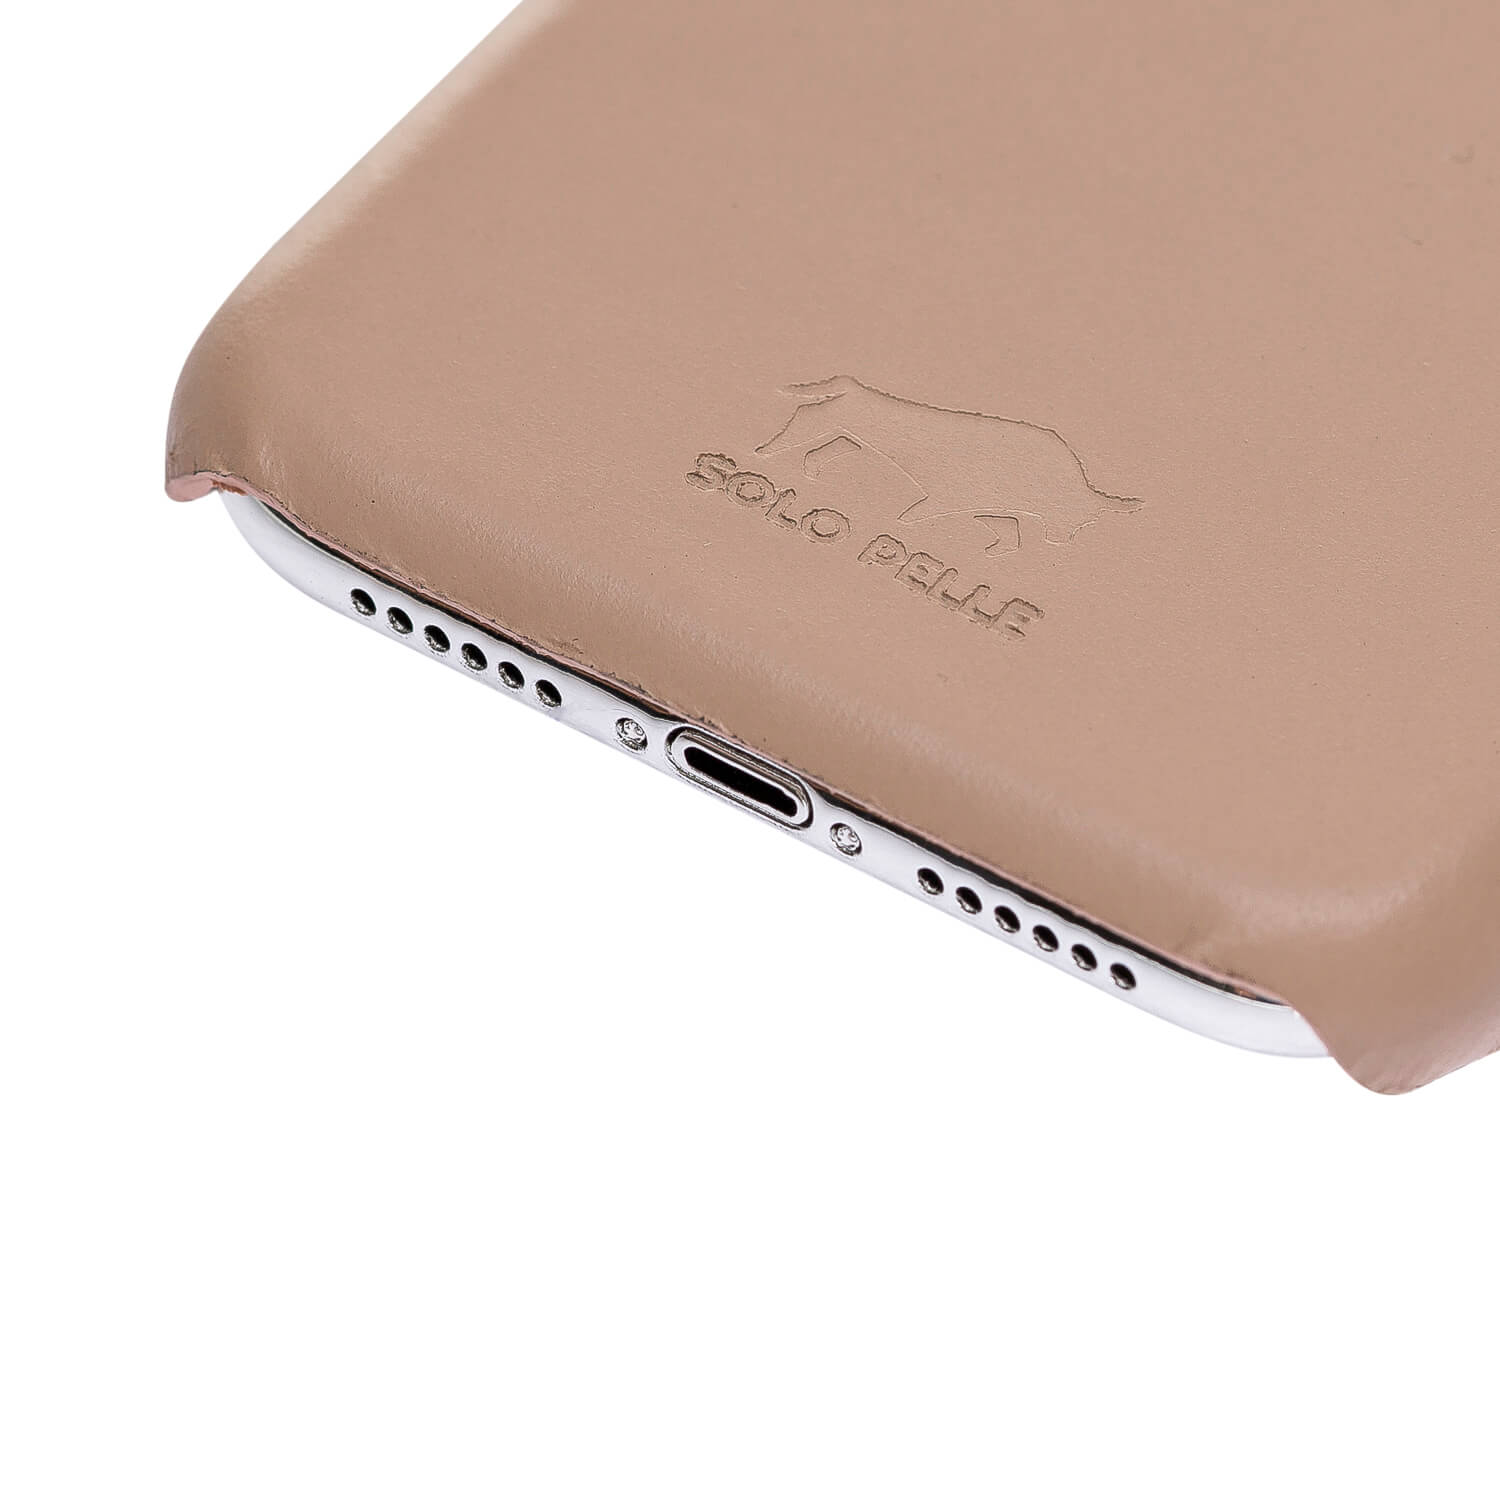 Solo Pelle iPhone XR Lederhülle Ledertasche Backcover Ultra Slim (Nude)